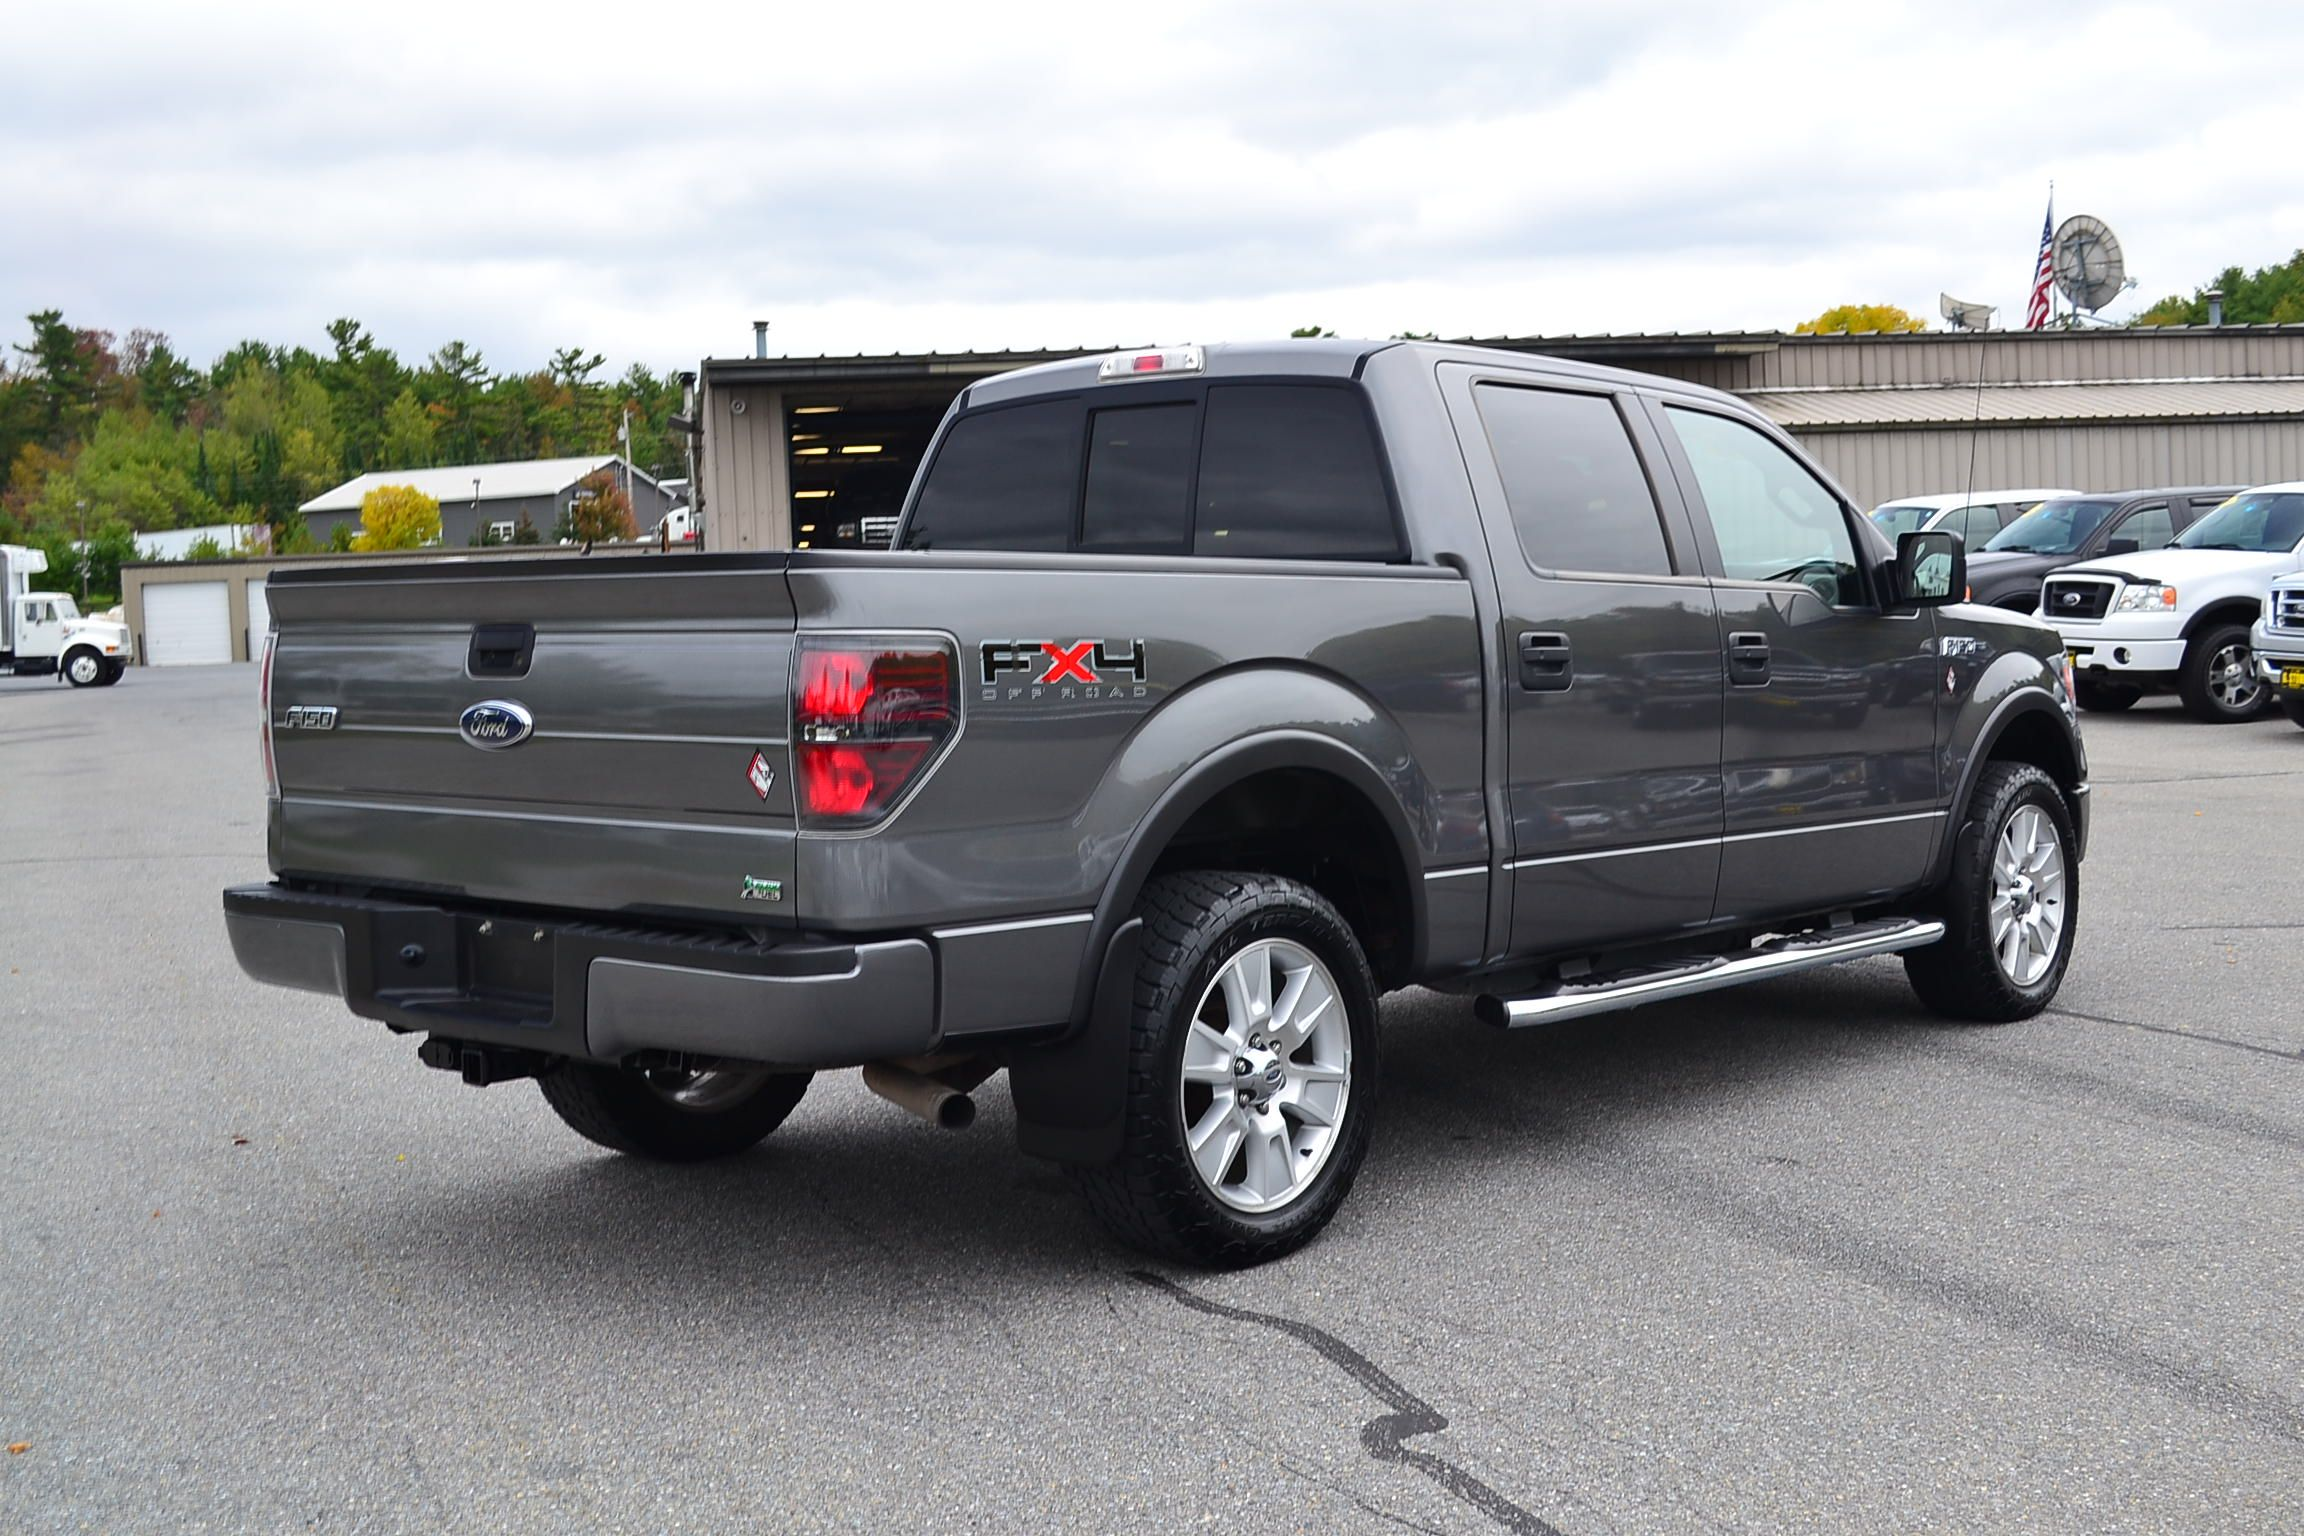 2010 Ford F 150 Middlebury Vt 4000122763206254013 5 Mobil